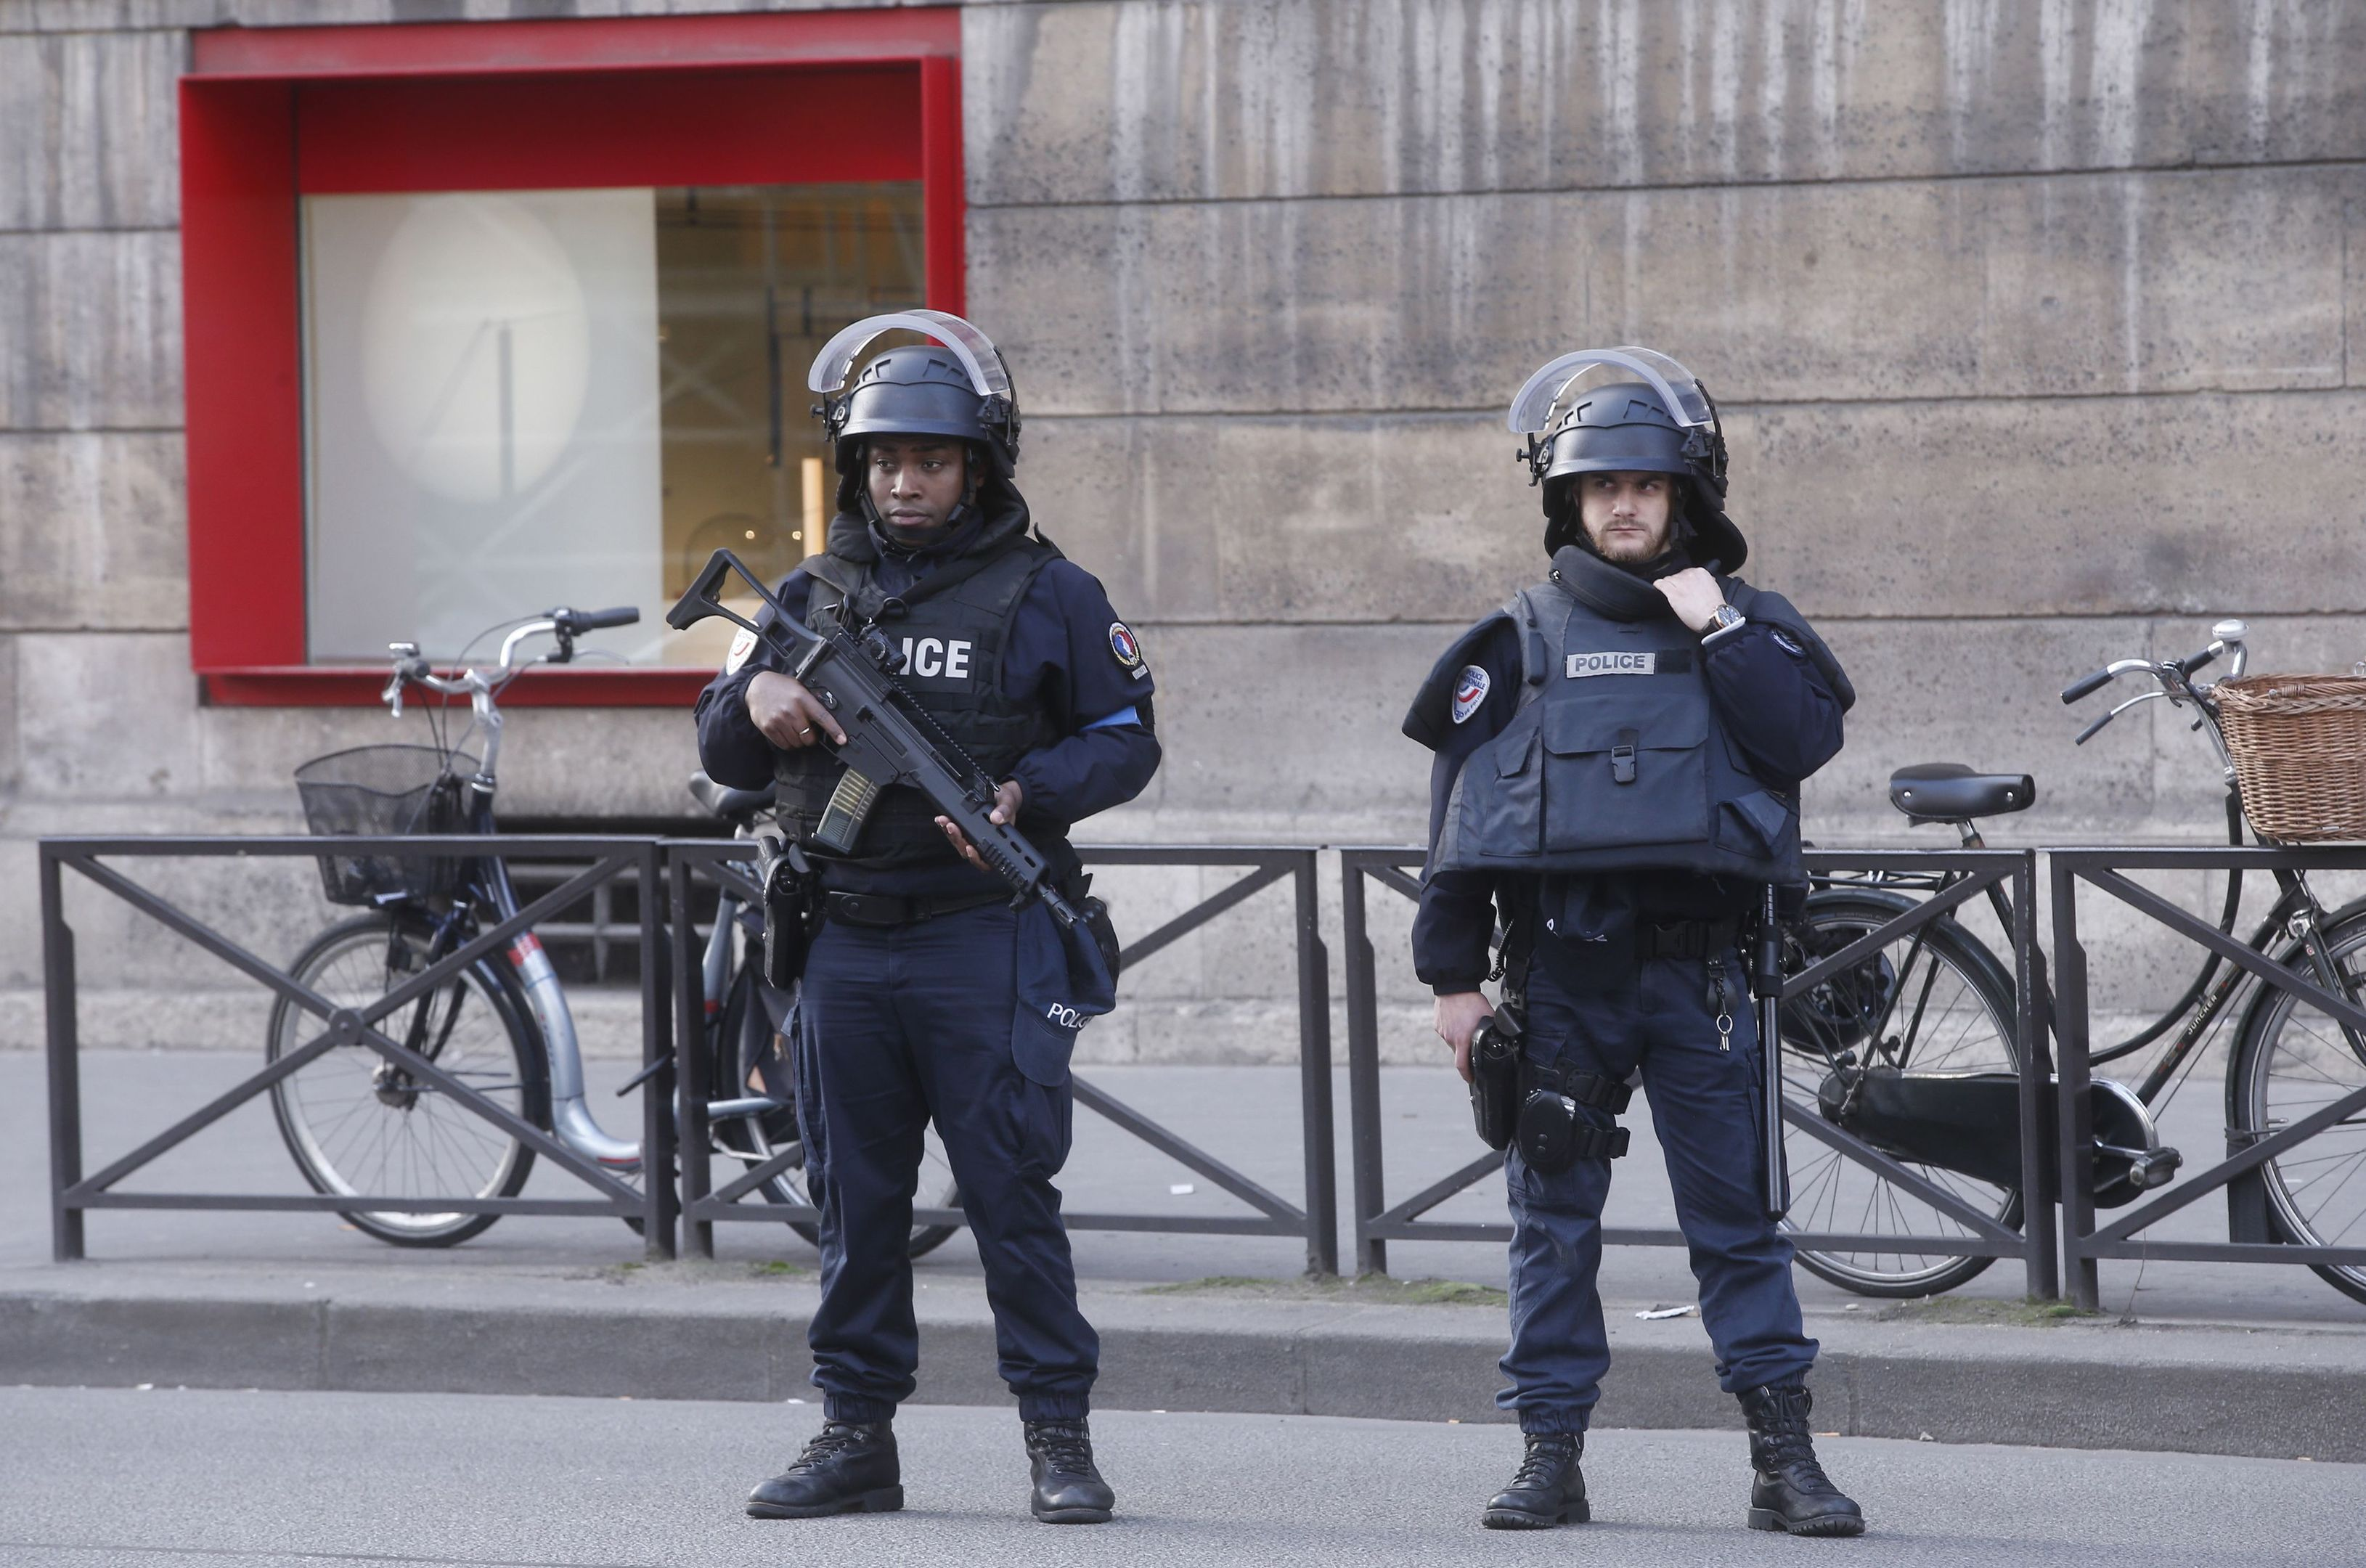 Armed police officers take position outside the Louvre museum in Paris.